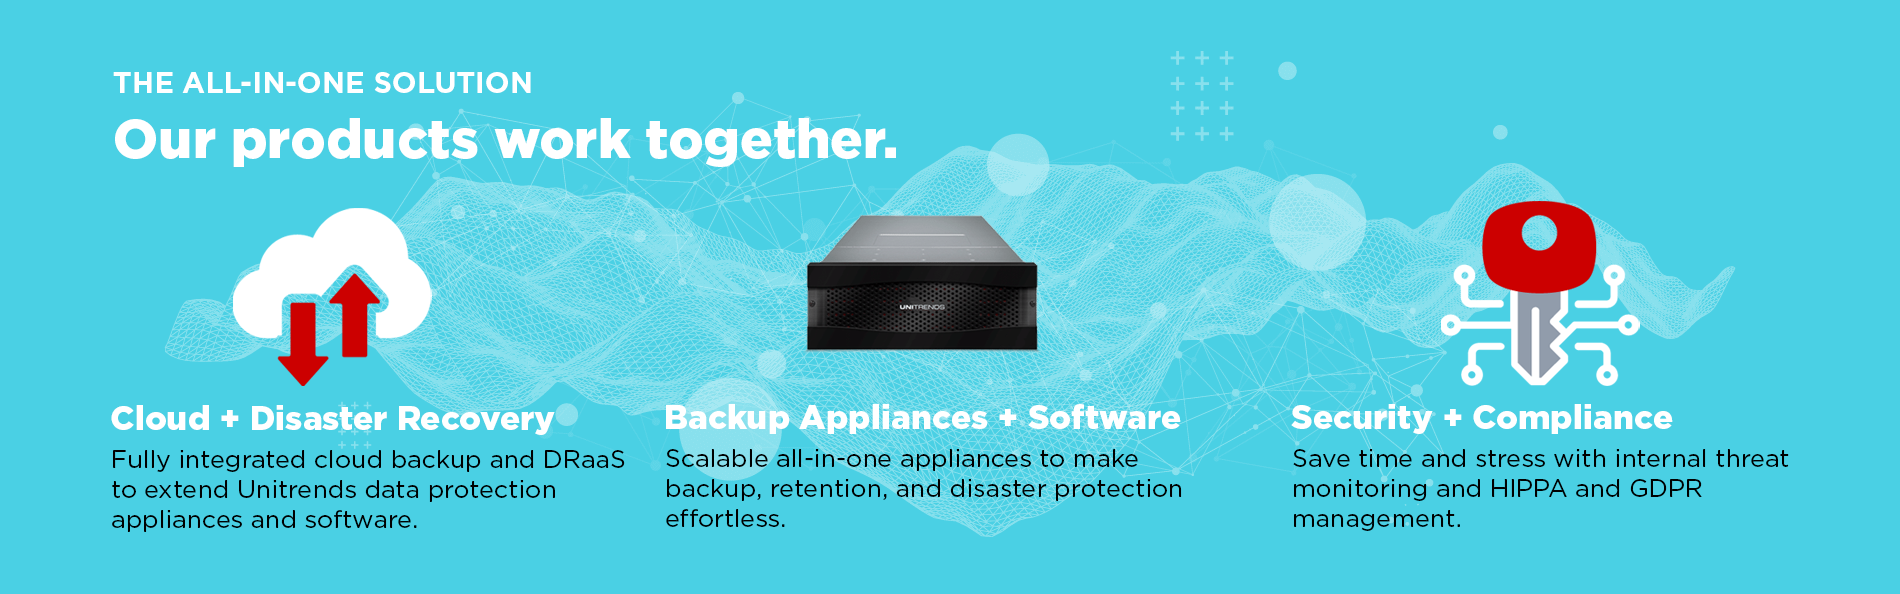 The all-in-one Solution - Our products work together.